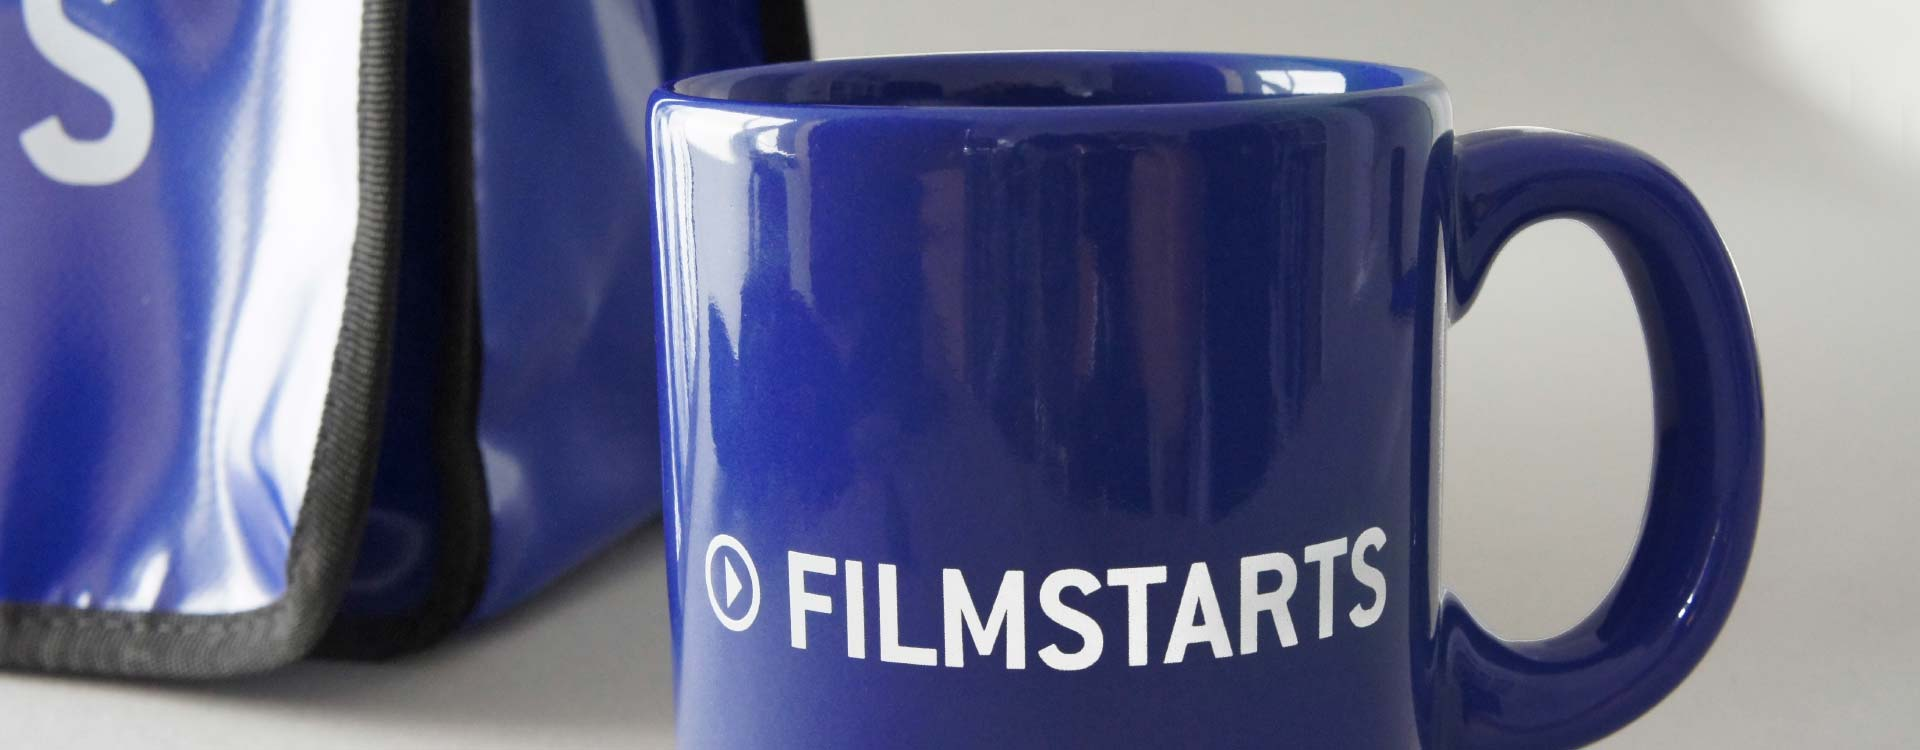 Mousepad with Filmstarts logo